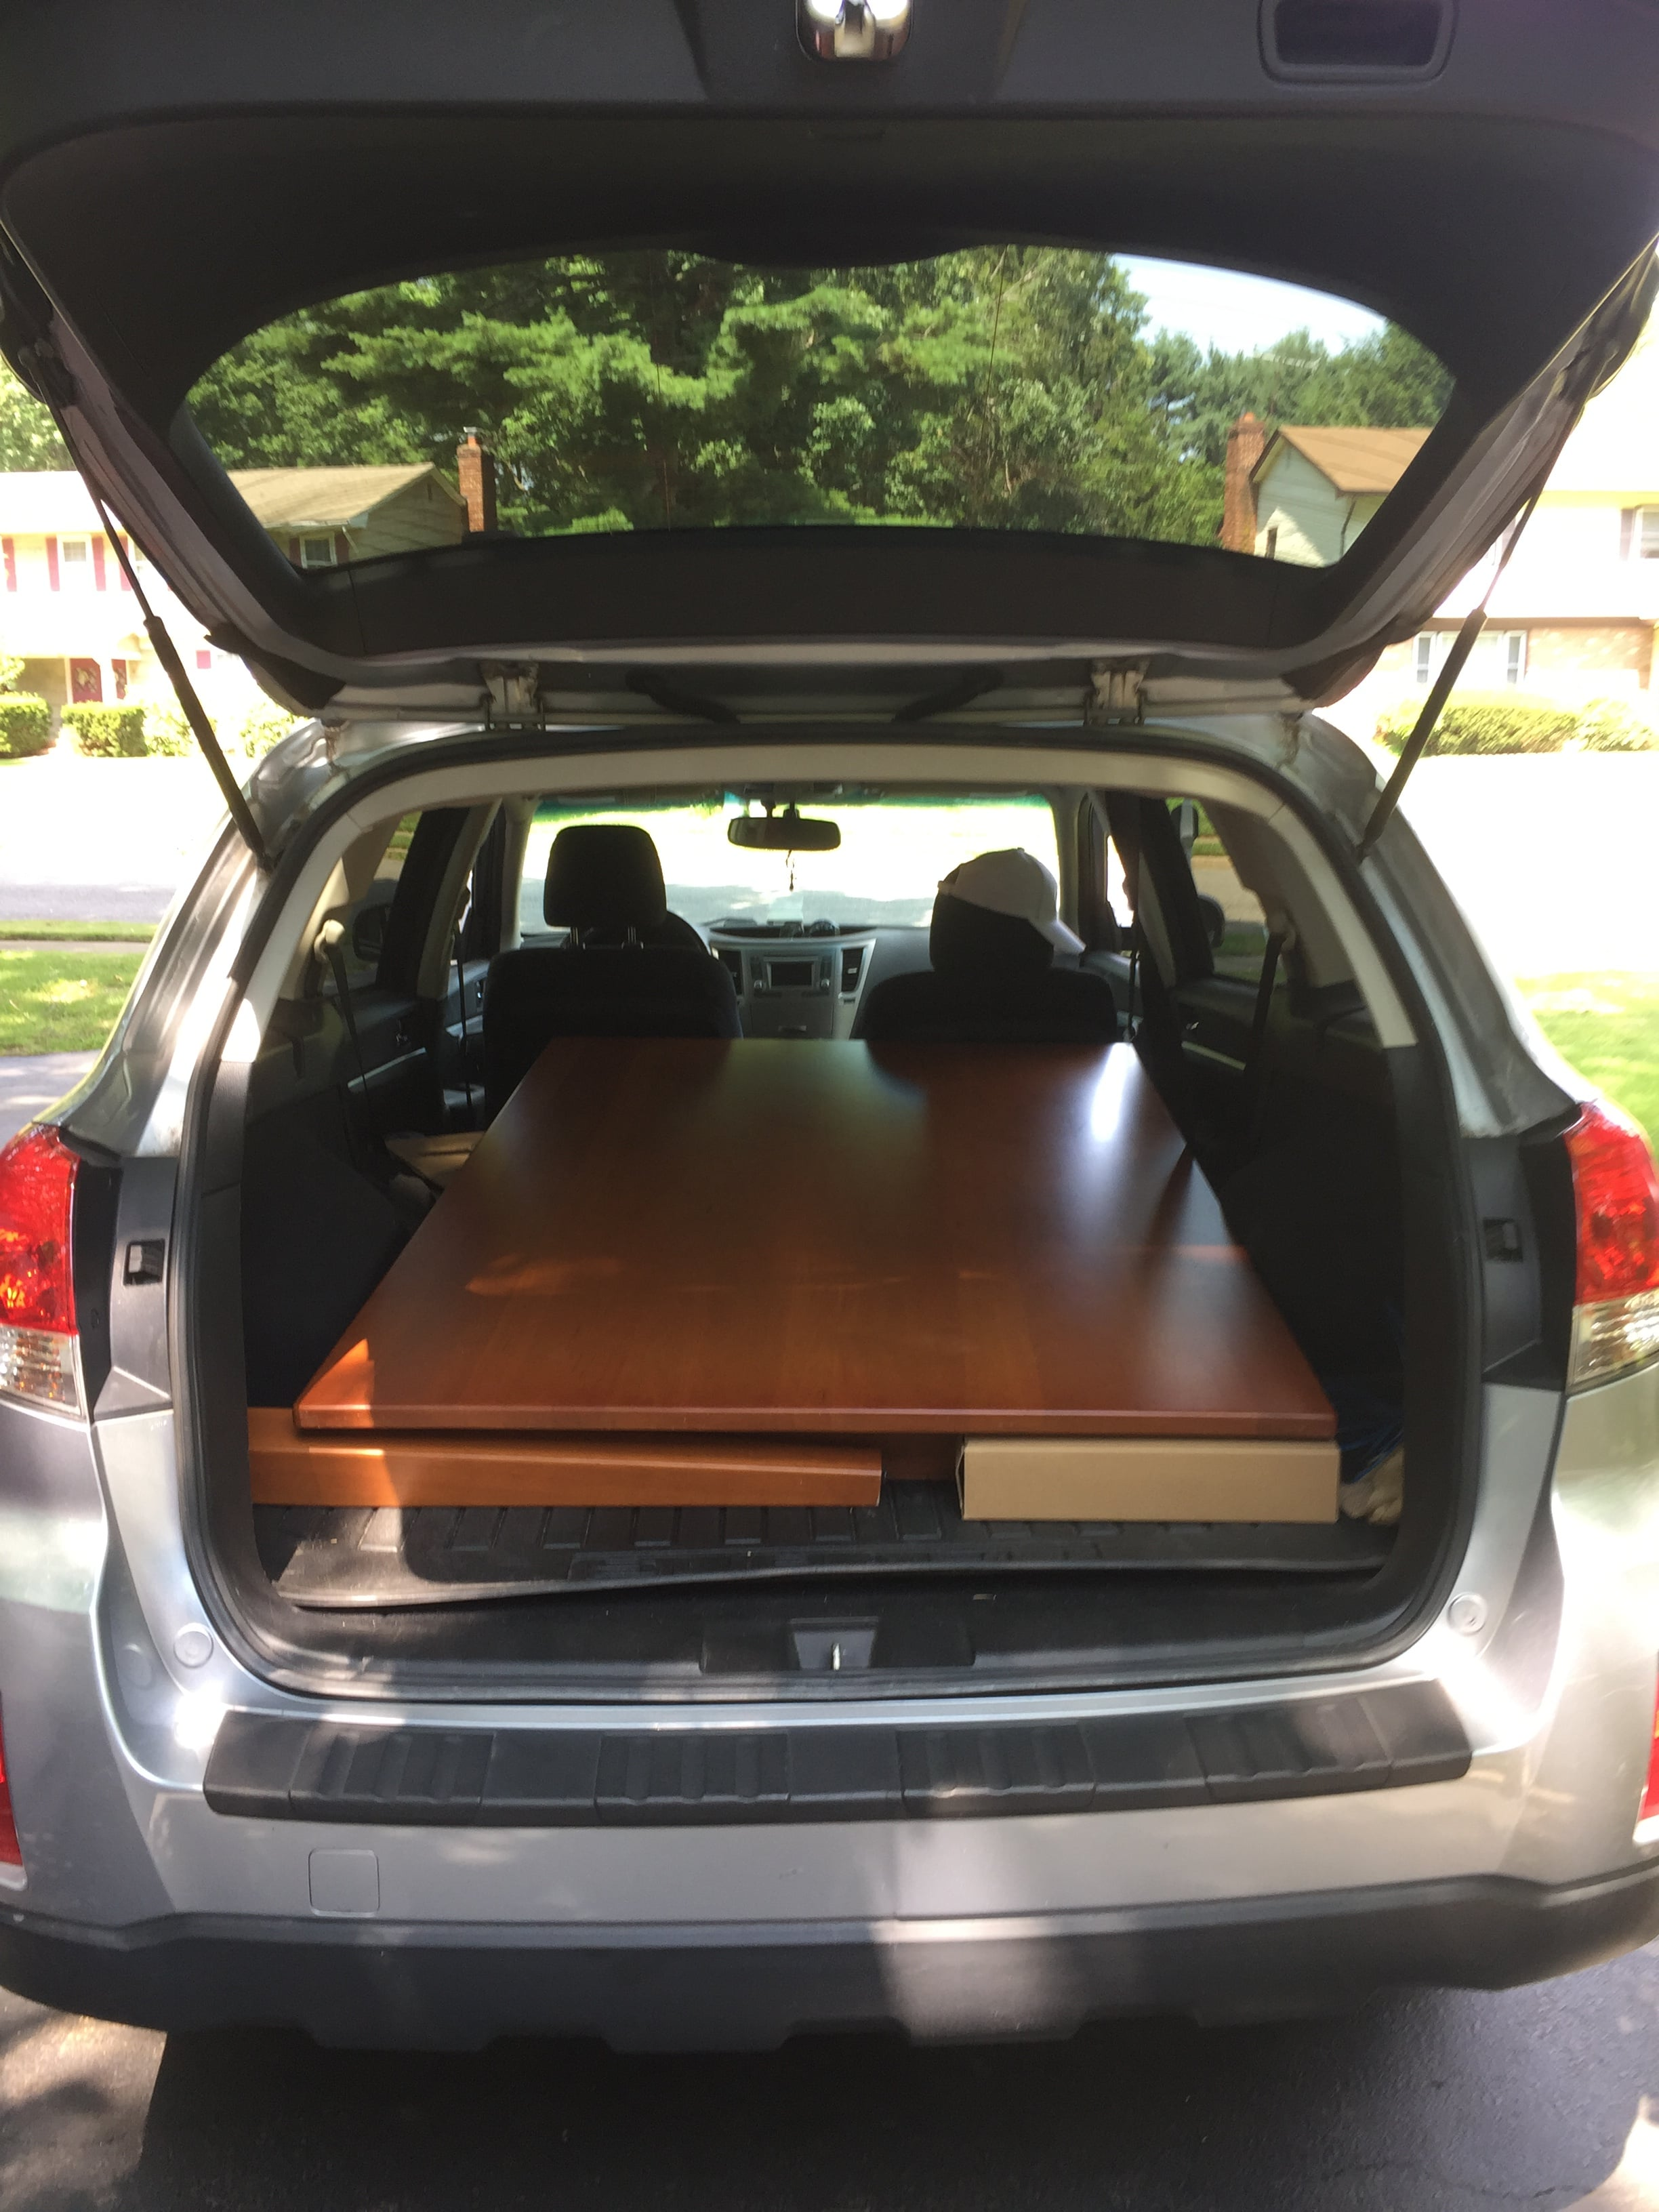 Wohoo! When the secondhand table you purchased on eBay fits perfectly in your car.